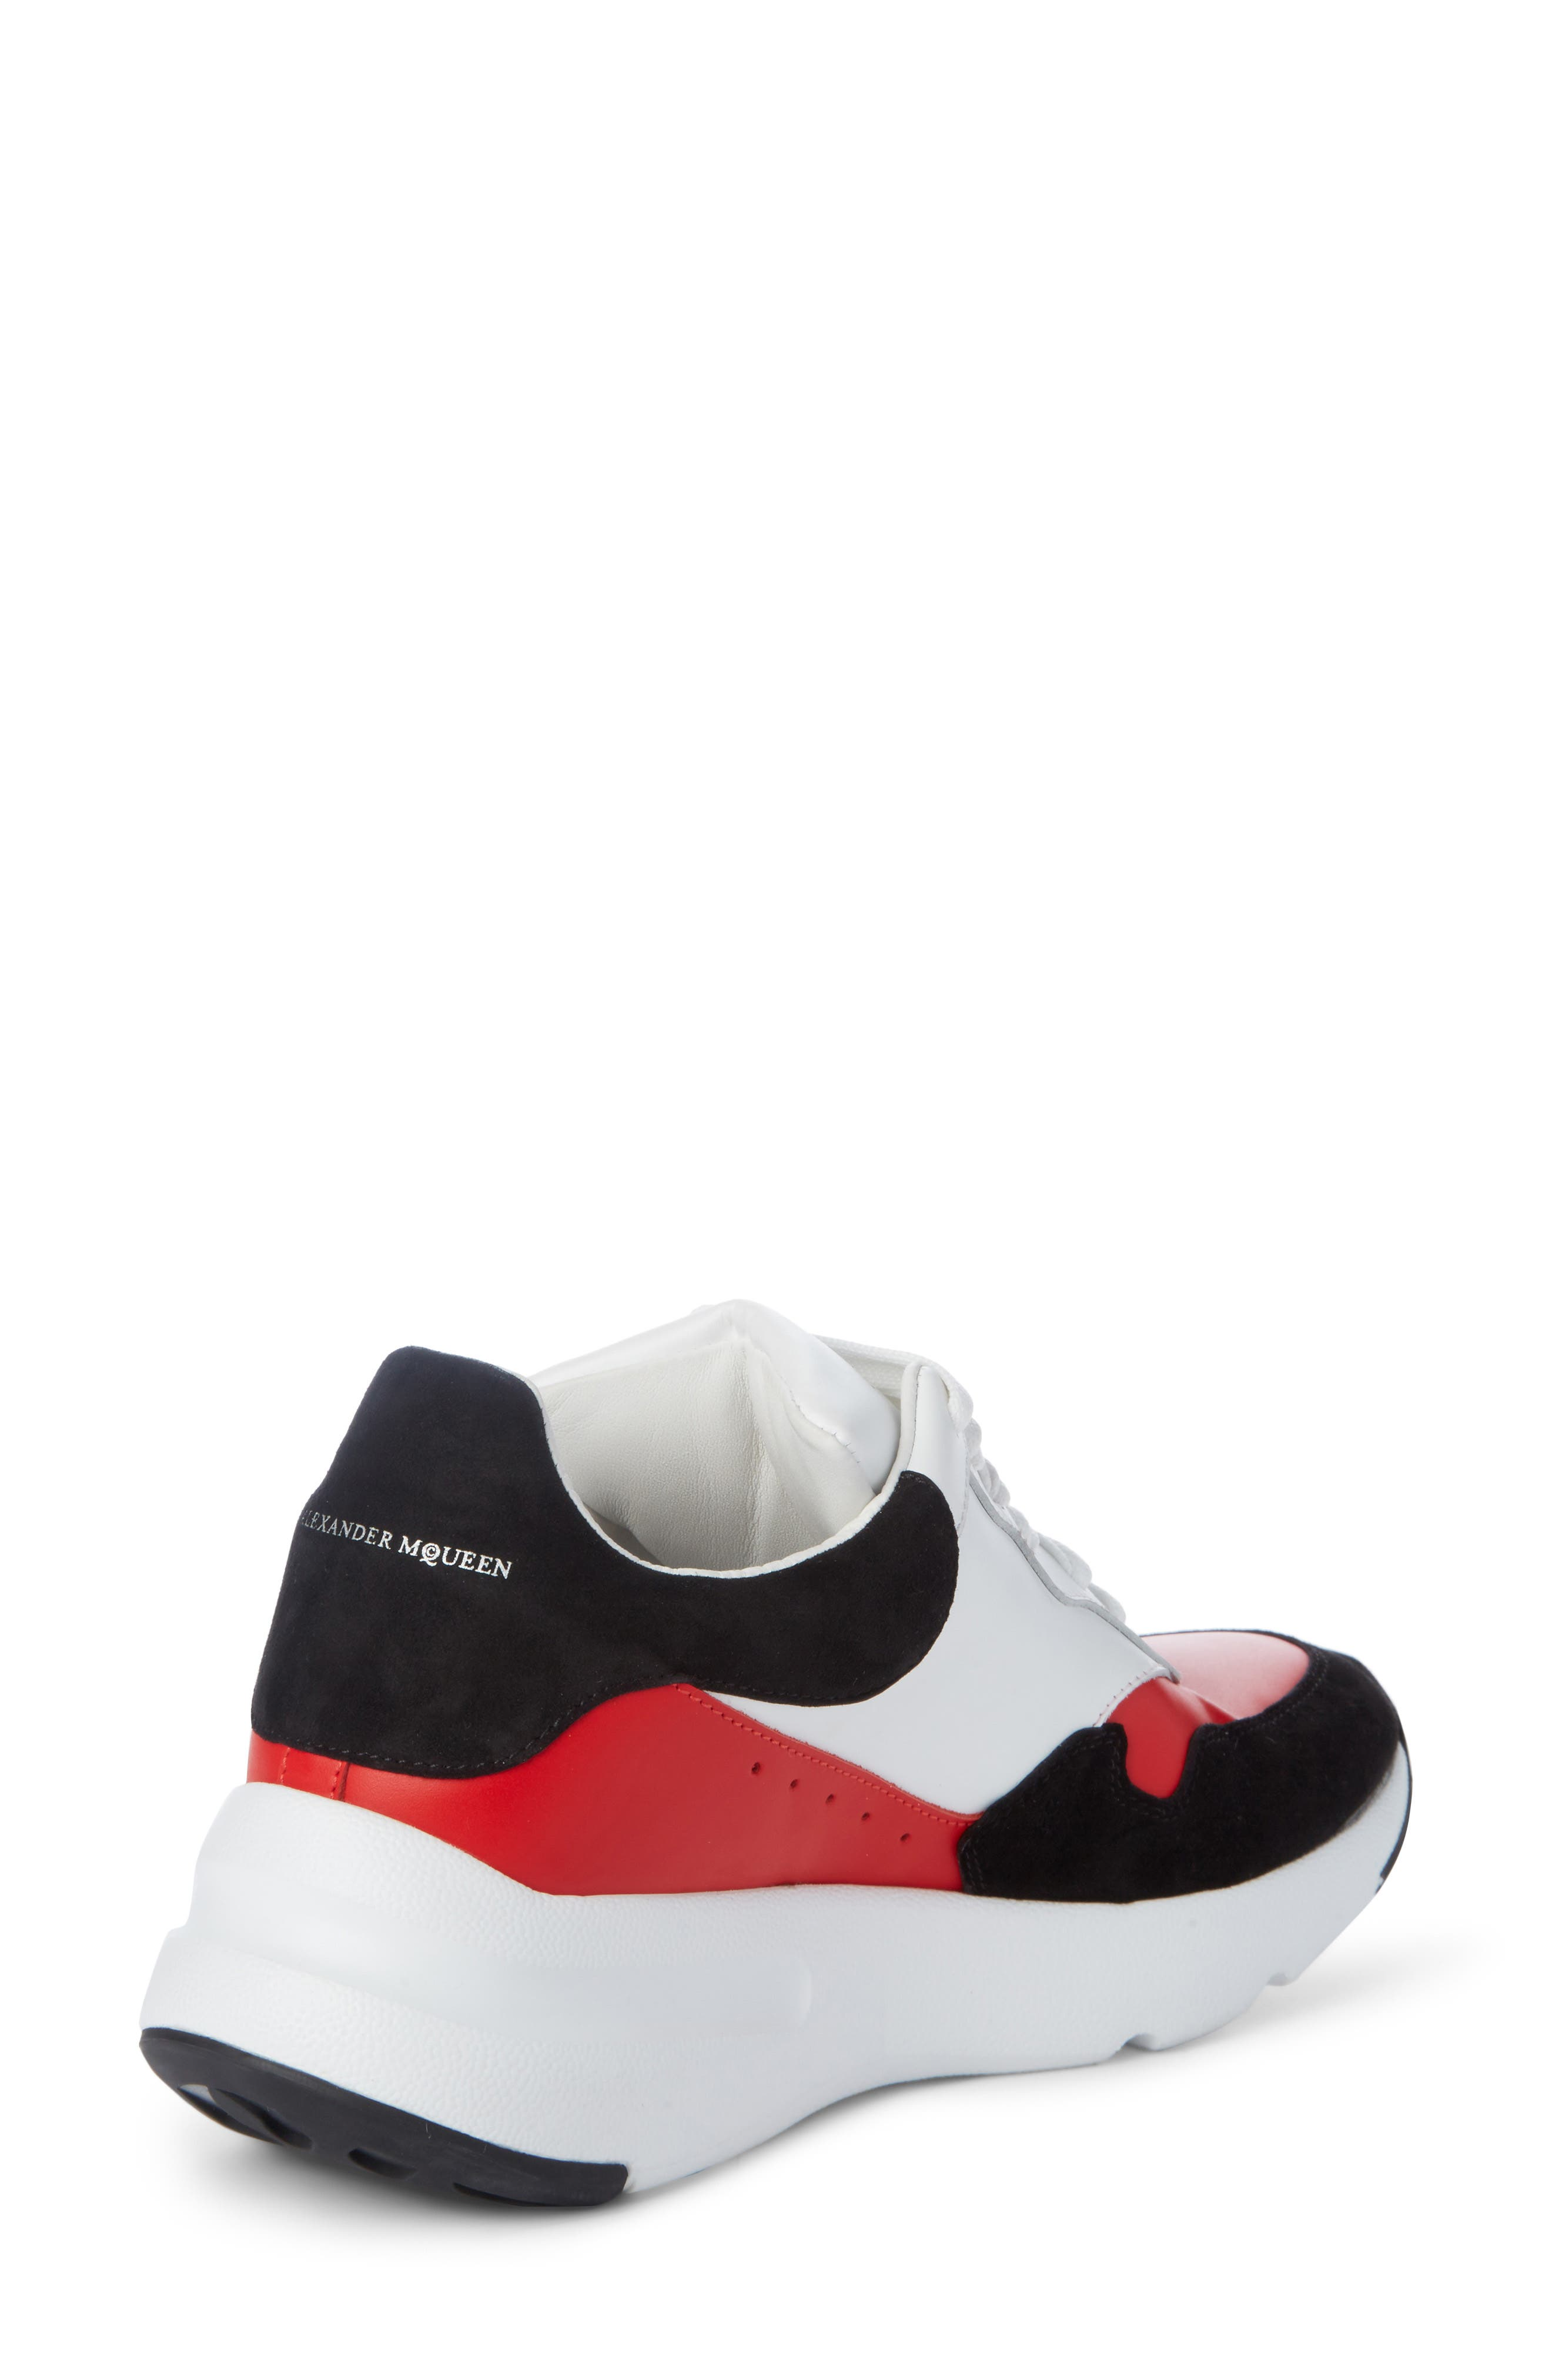 Runner Lace-Up Sneaker,                             Alternate thumbnail 2, color,                             Black/ Red/ White